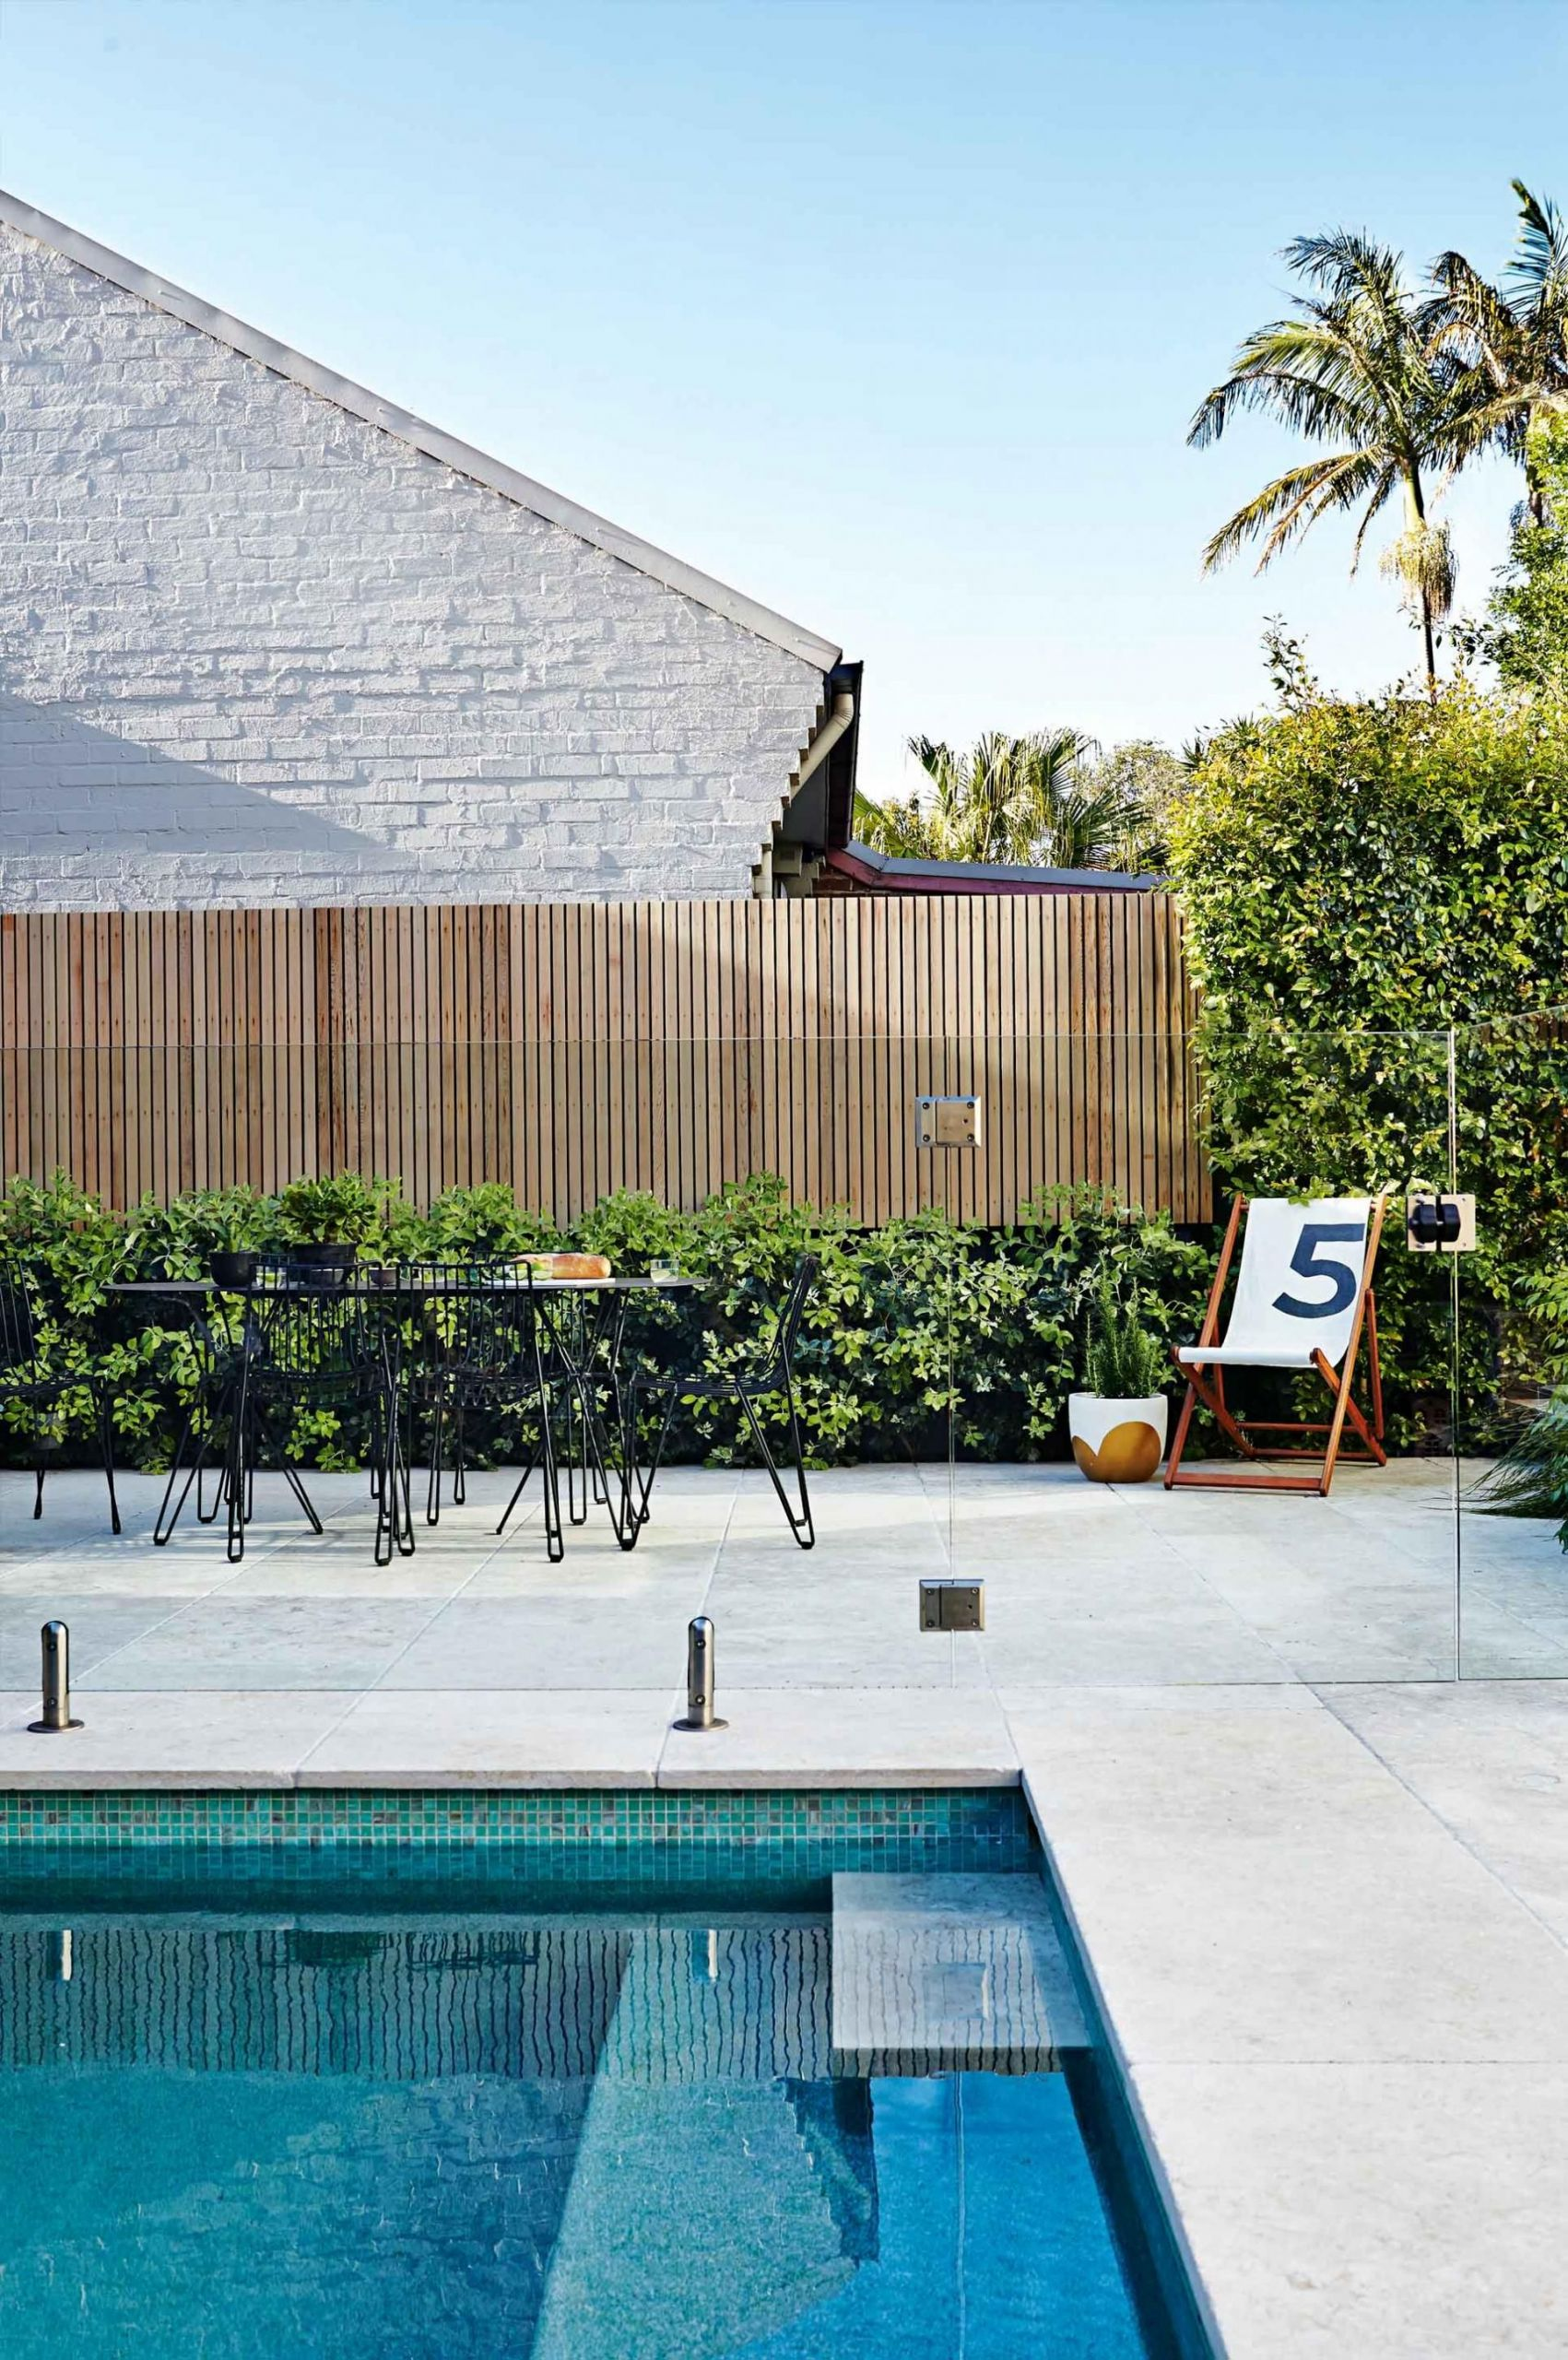 Pool Garten Gestaltung Elegant 5 Ideas for A Simple and Refined Garden Design Styling by